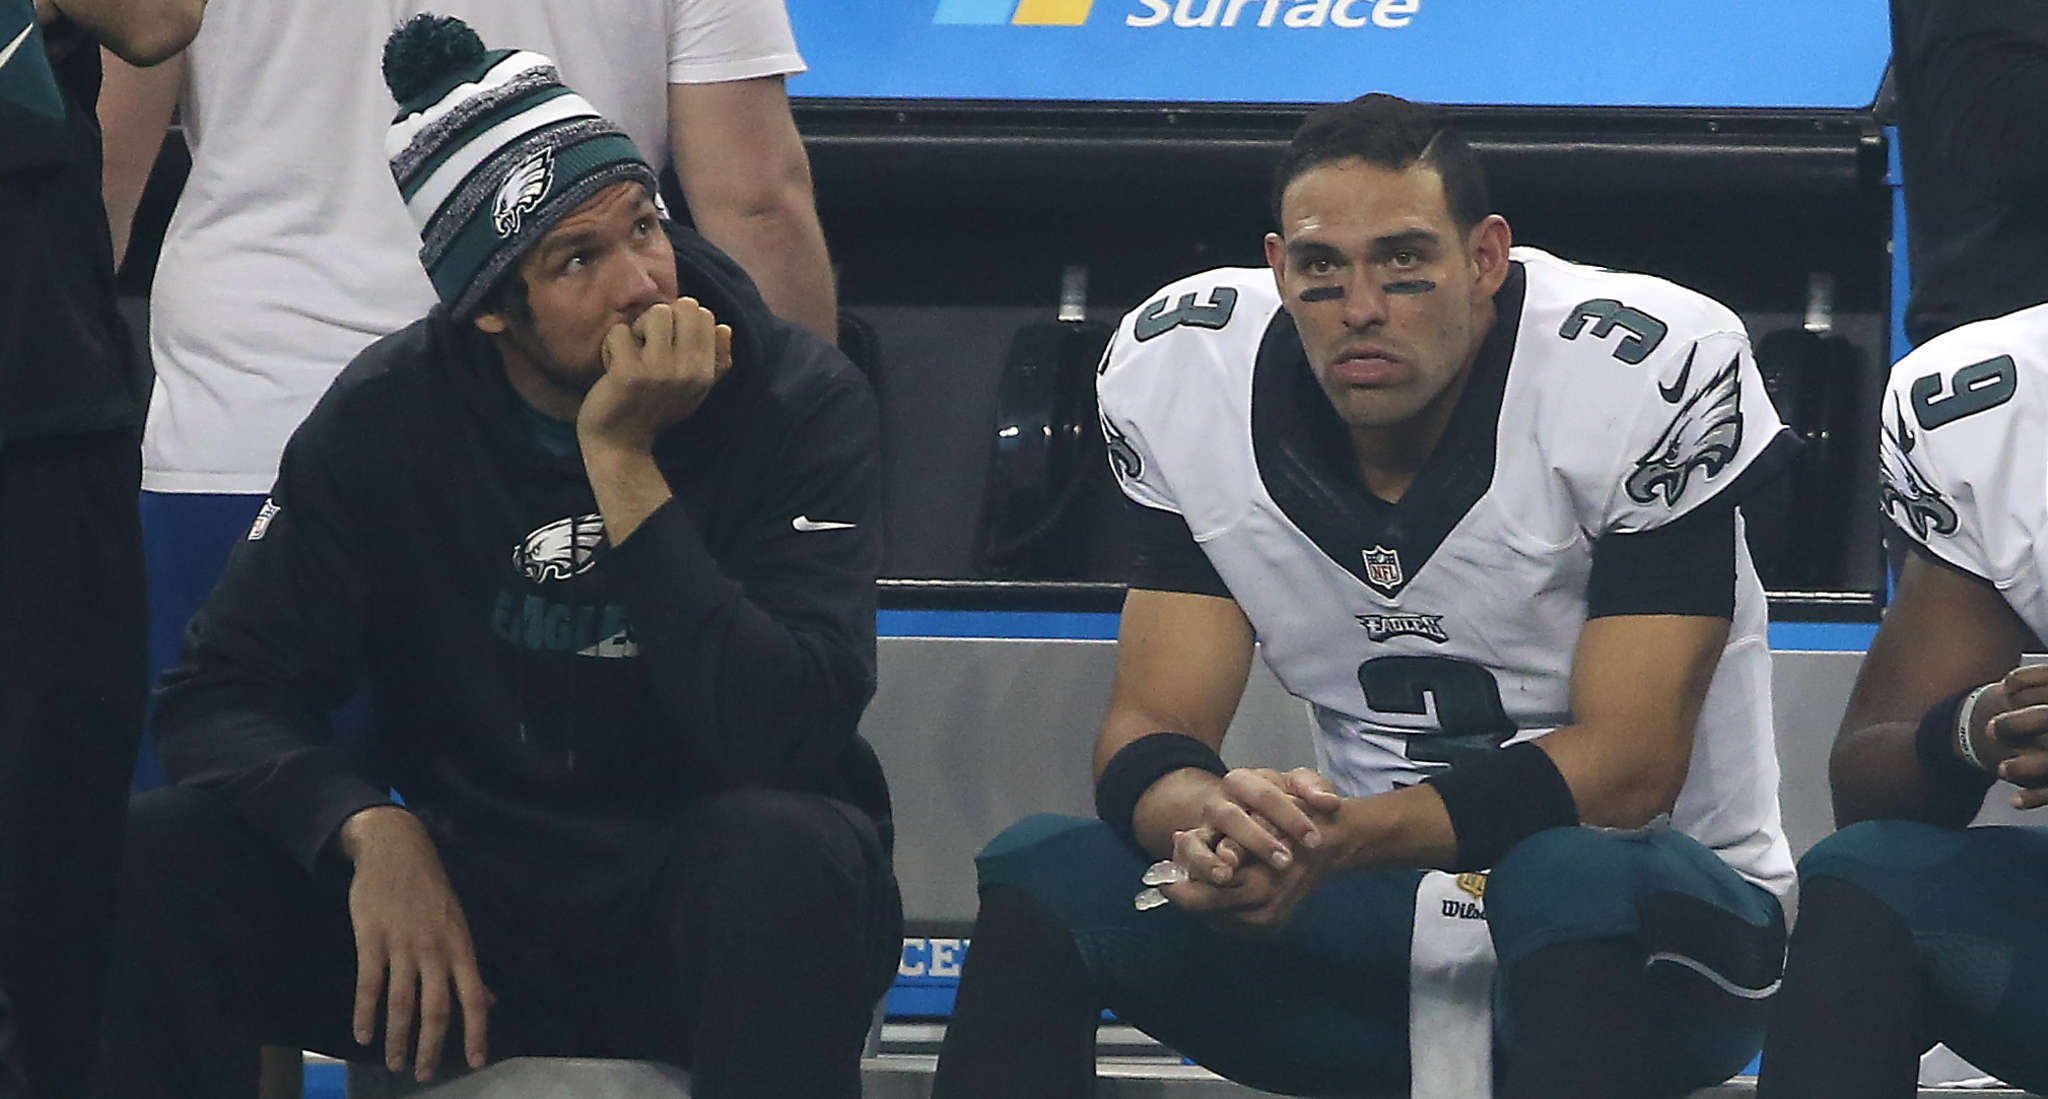 Eagles´ quarterbacks Sam Bradford (left) and Mark Sanchez watch from the bench during the fourth quarter of a 45-14 loss to the Lions. Sanchez was sacked six times in the blowout in Detroit.